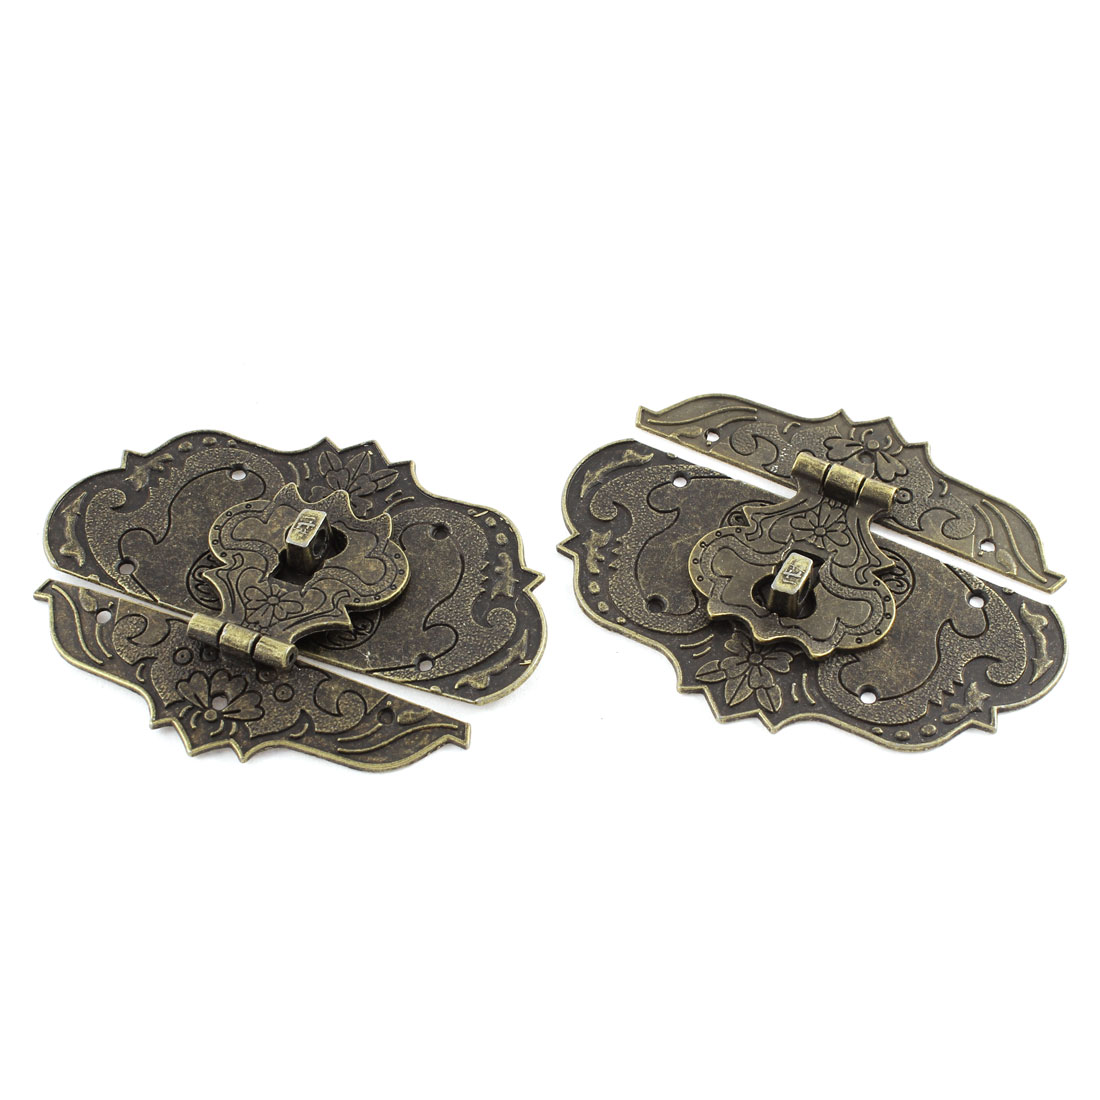 97mmx73mm Antique Brass Color Jewelry Box Hasp Latch Lock 2 Pcs